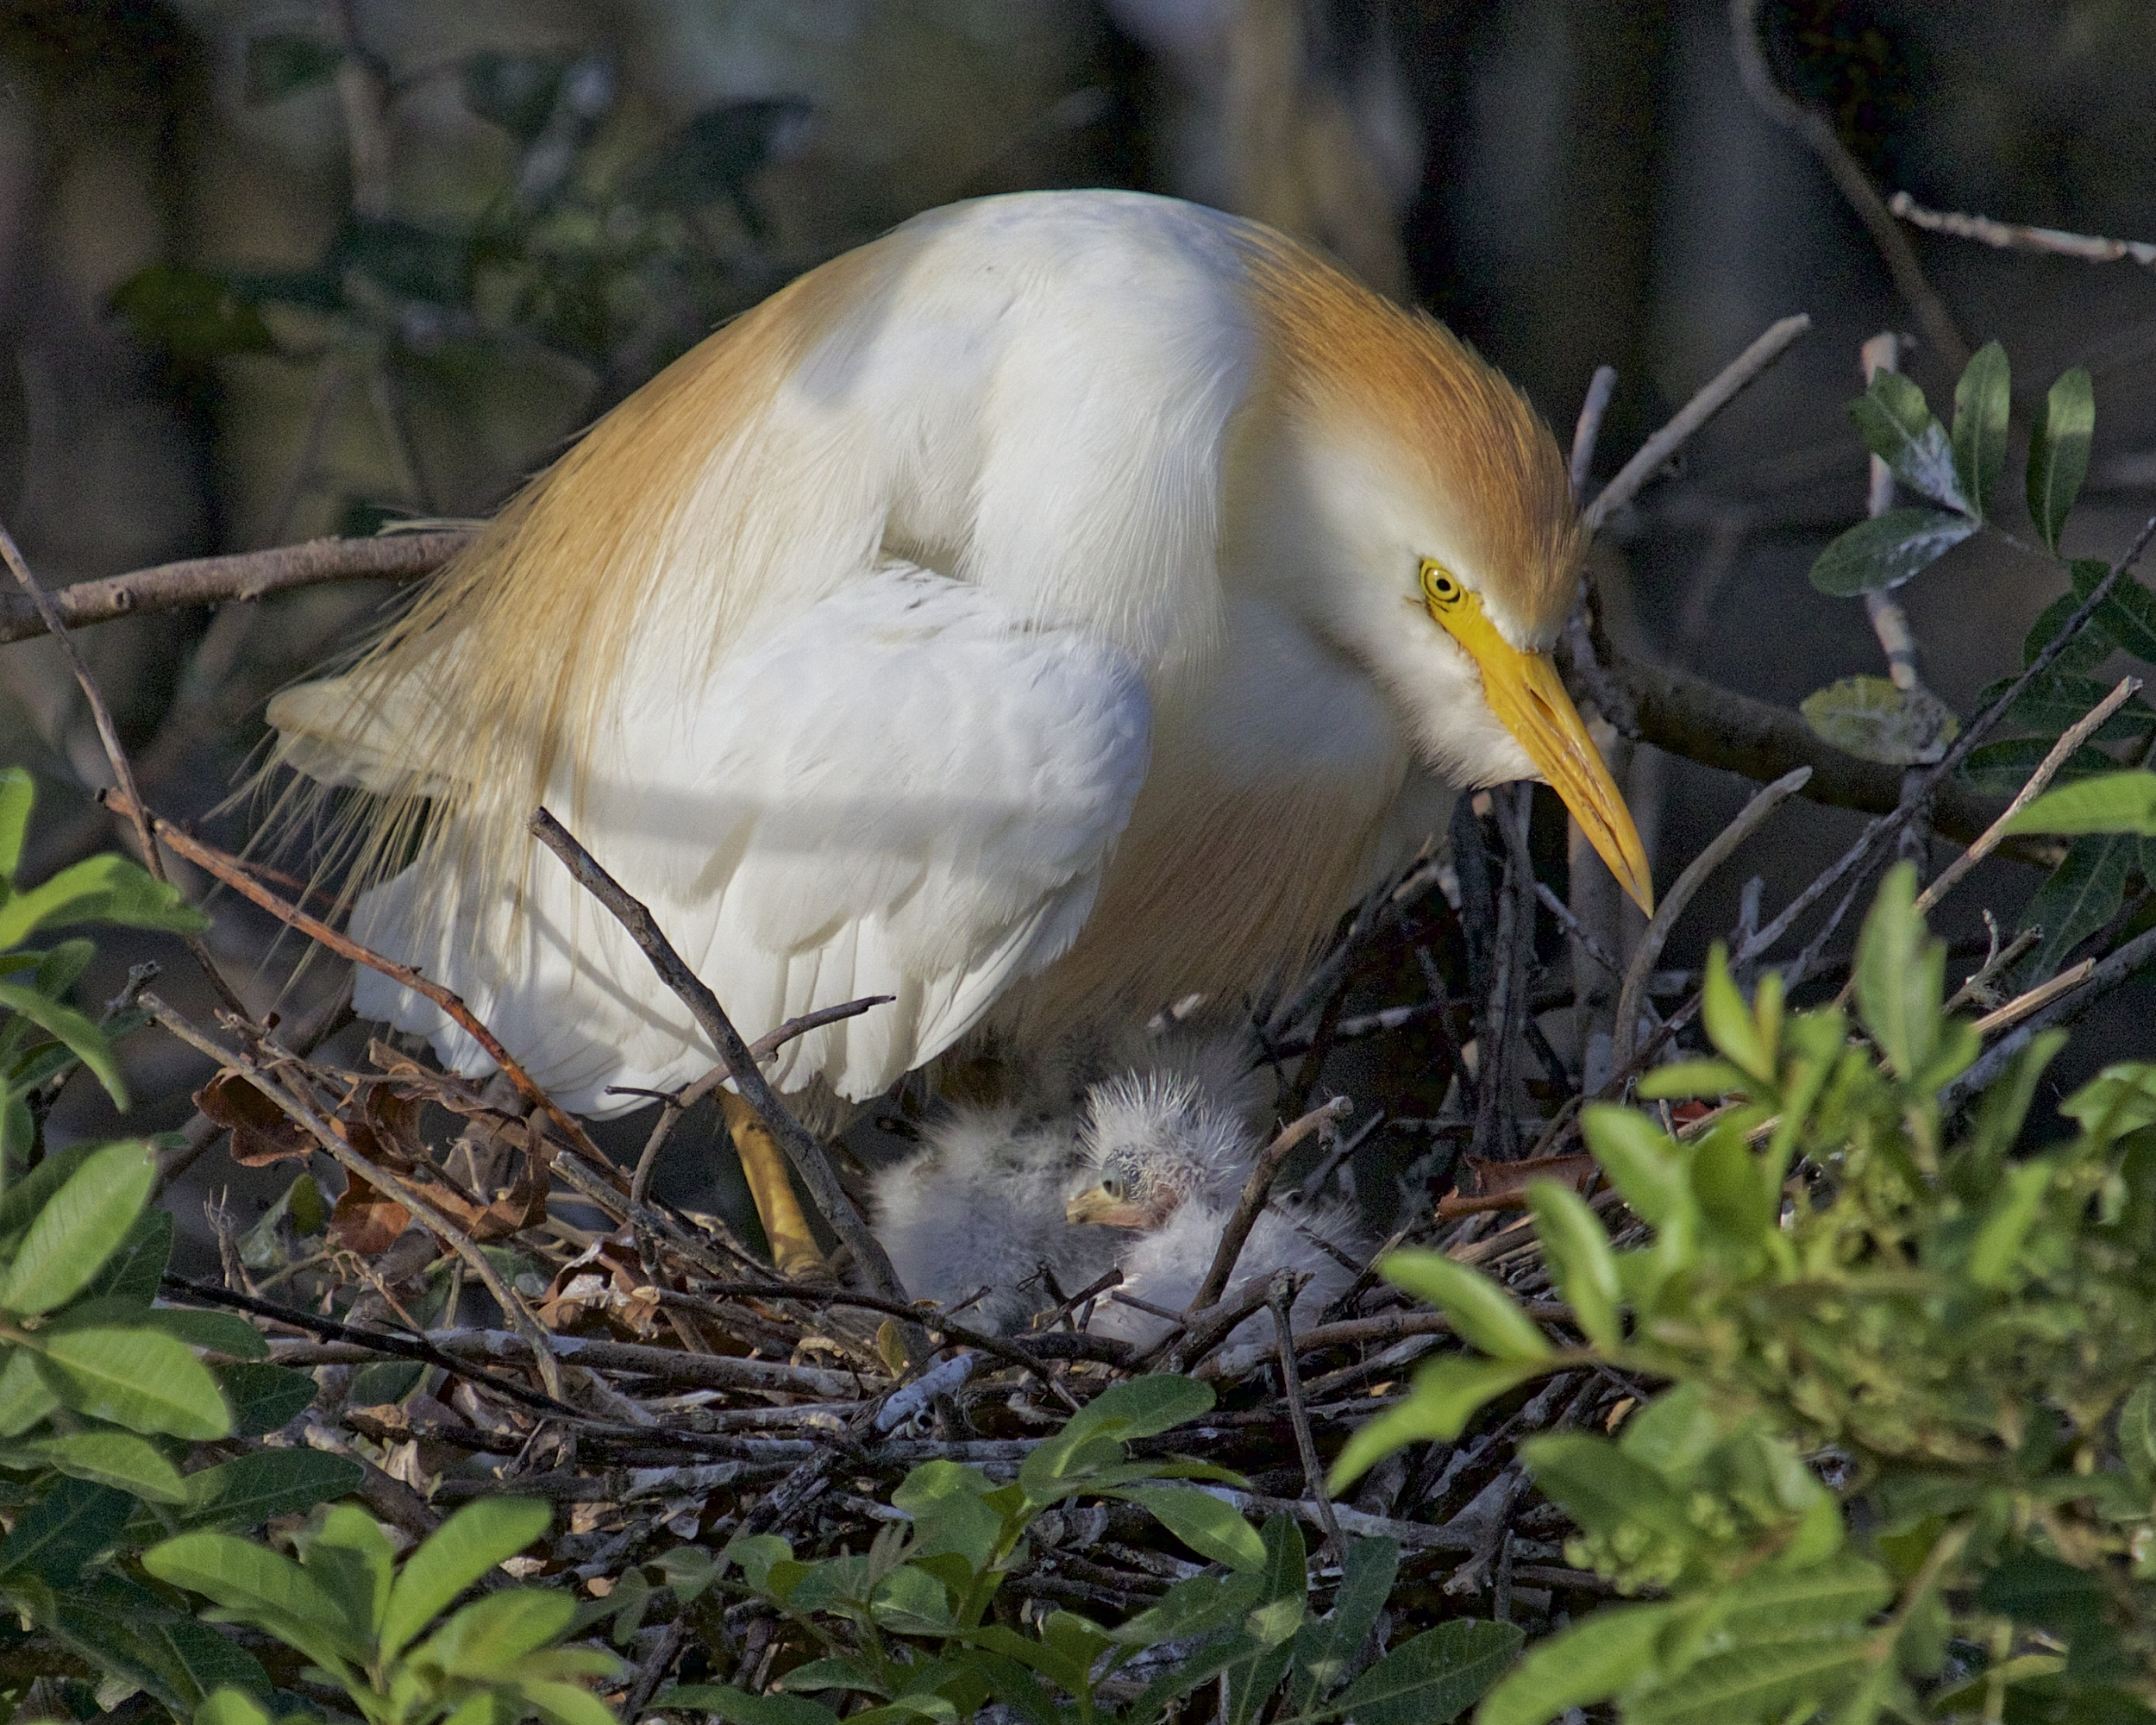 Marsh birds by the hundreds have made their nest in the Stick Marsh. These Cattle Egret hatchlings are hours old and being protected by their Mom who keeps a wary eye on us.